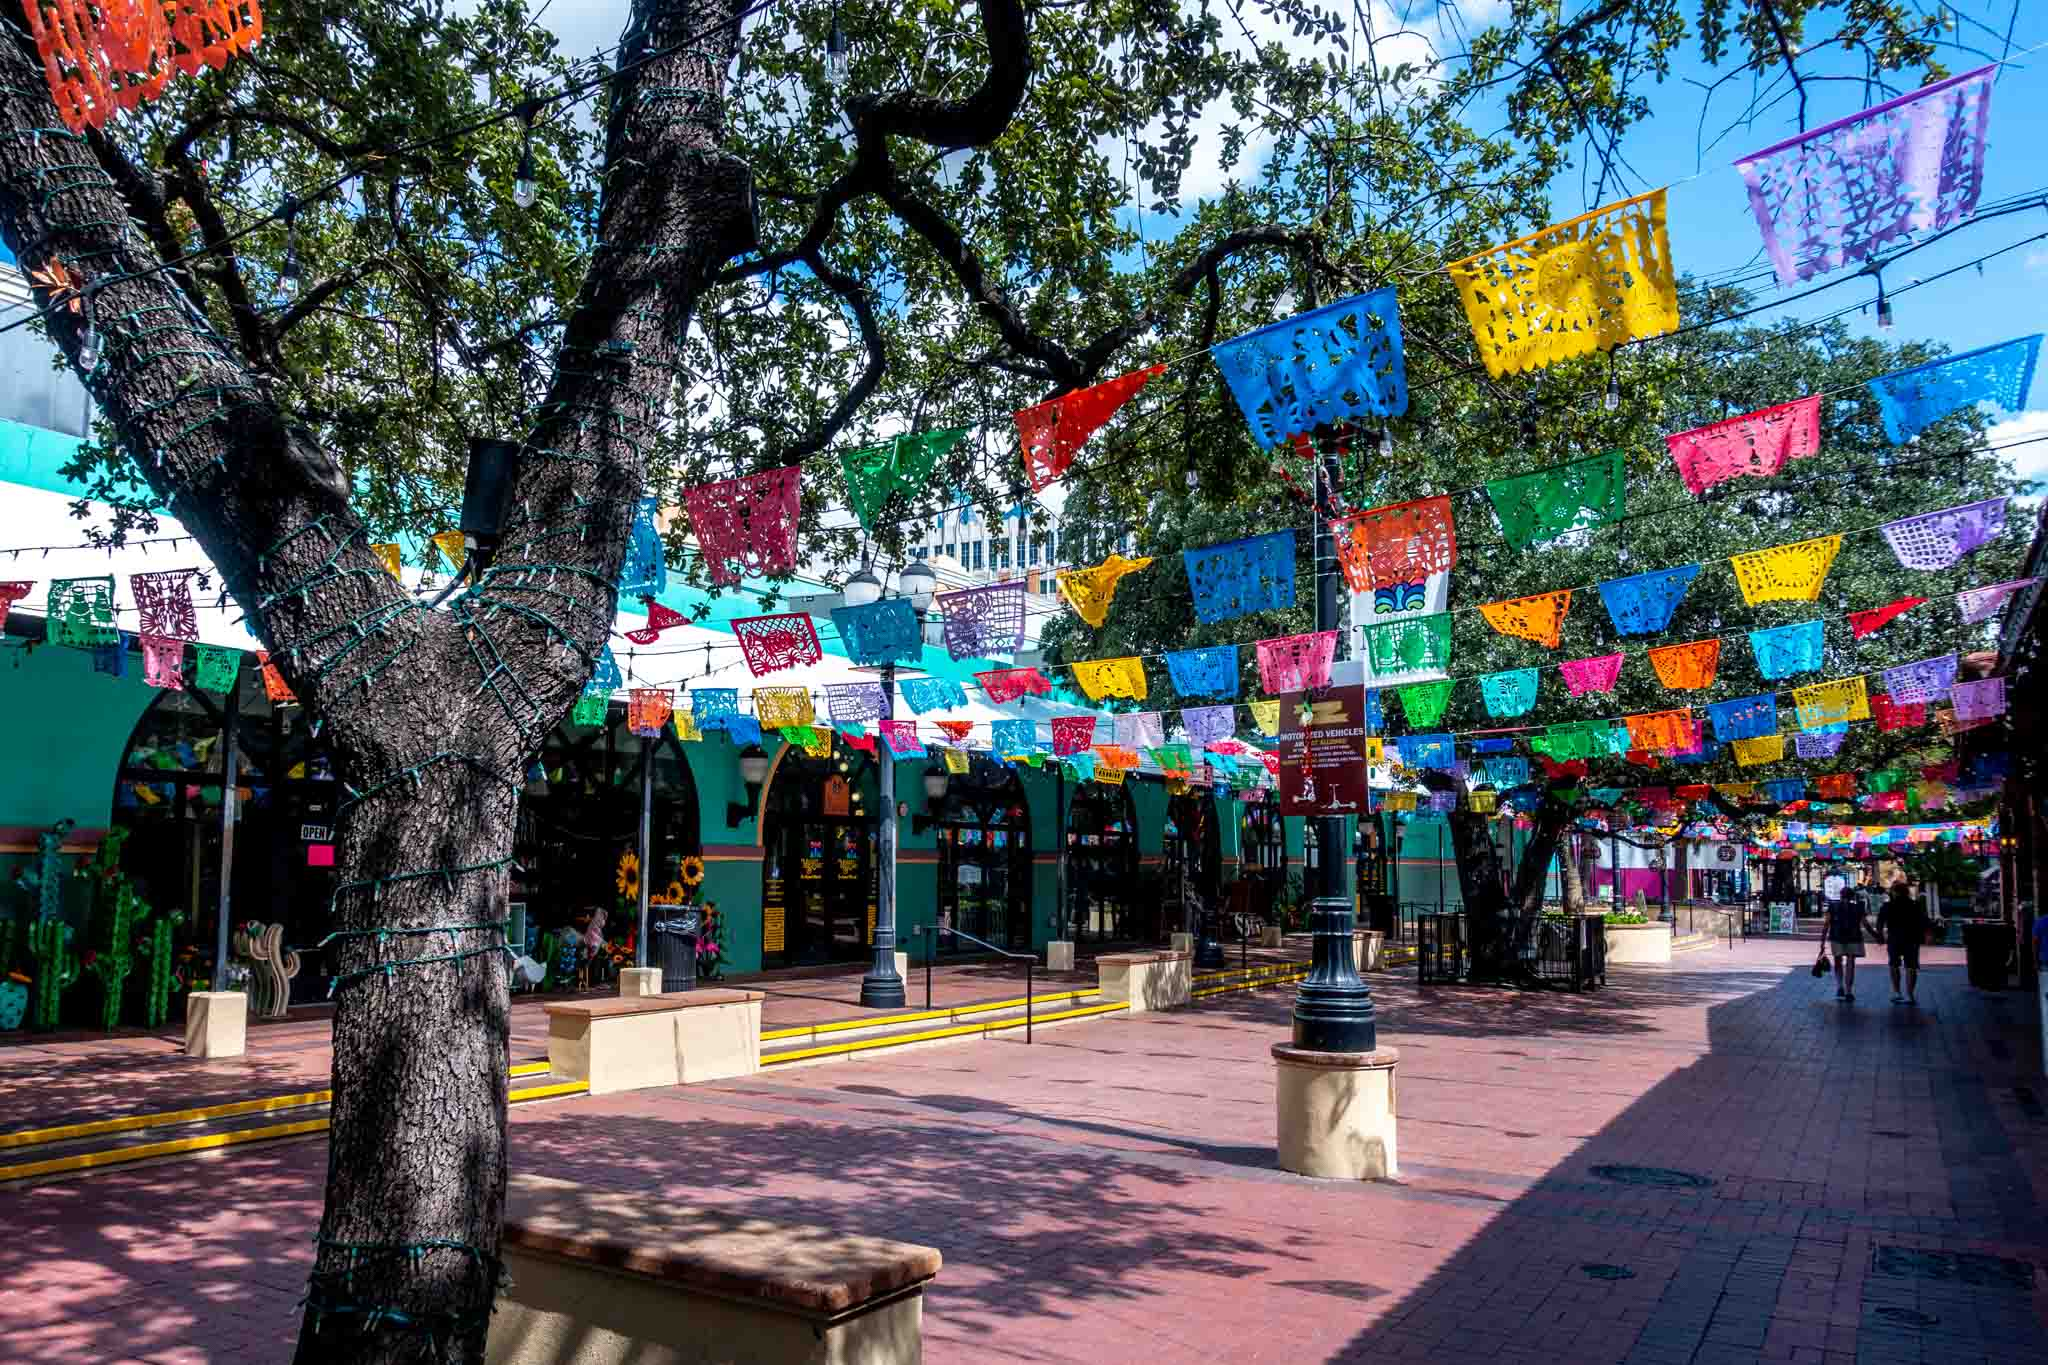 Colorful flags hung across a pedestrian walkway